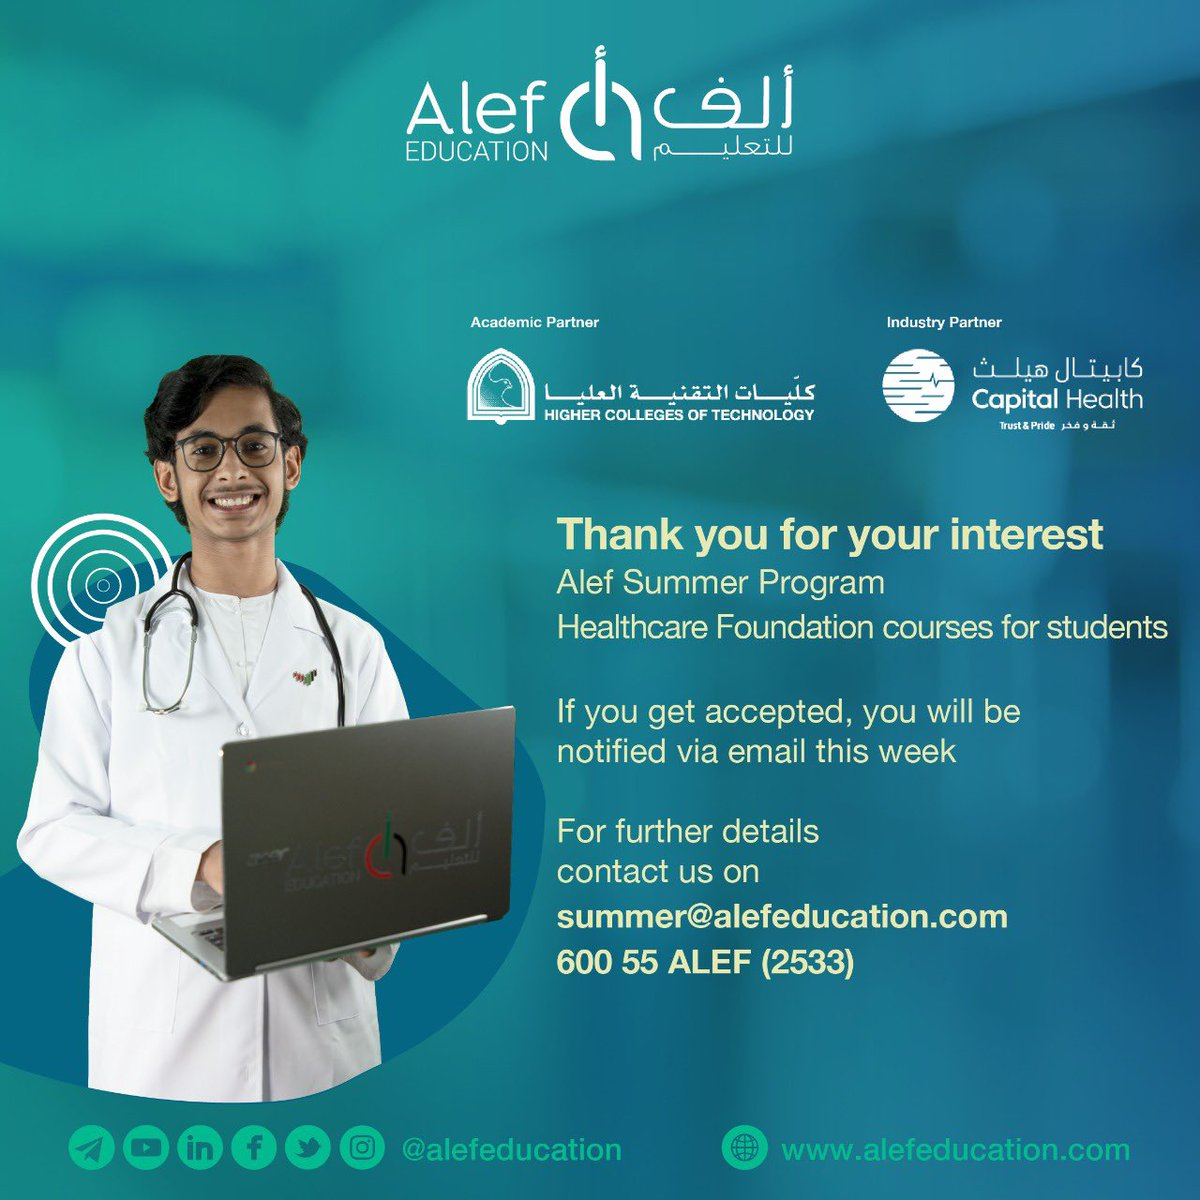 Thank you for your interest in the Alef Healthcare Summer Program.   If you got accepted, you will be notified via email by this week.  #LearningDoesnotStop #DistanceLearning https://t.co/GL38y8NhYr